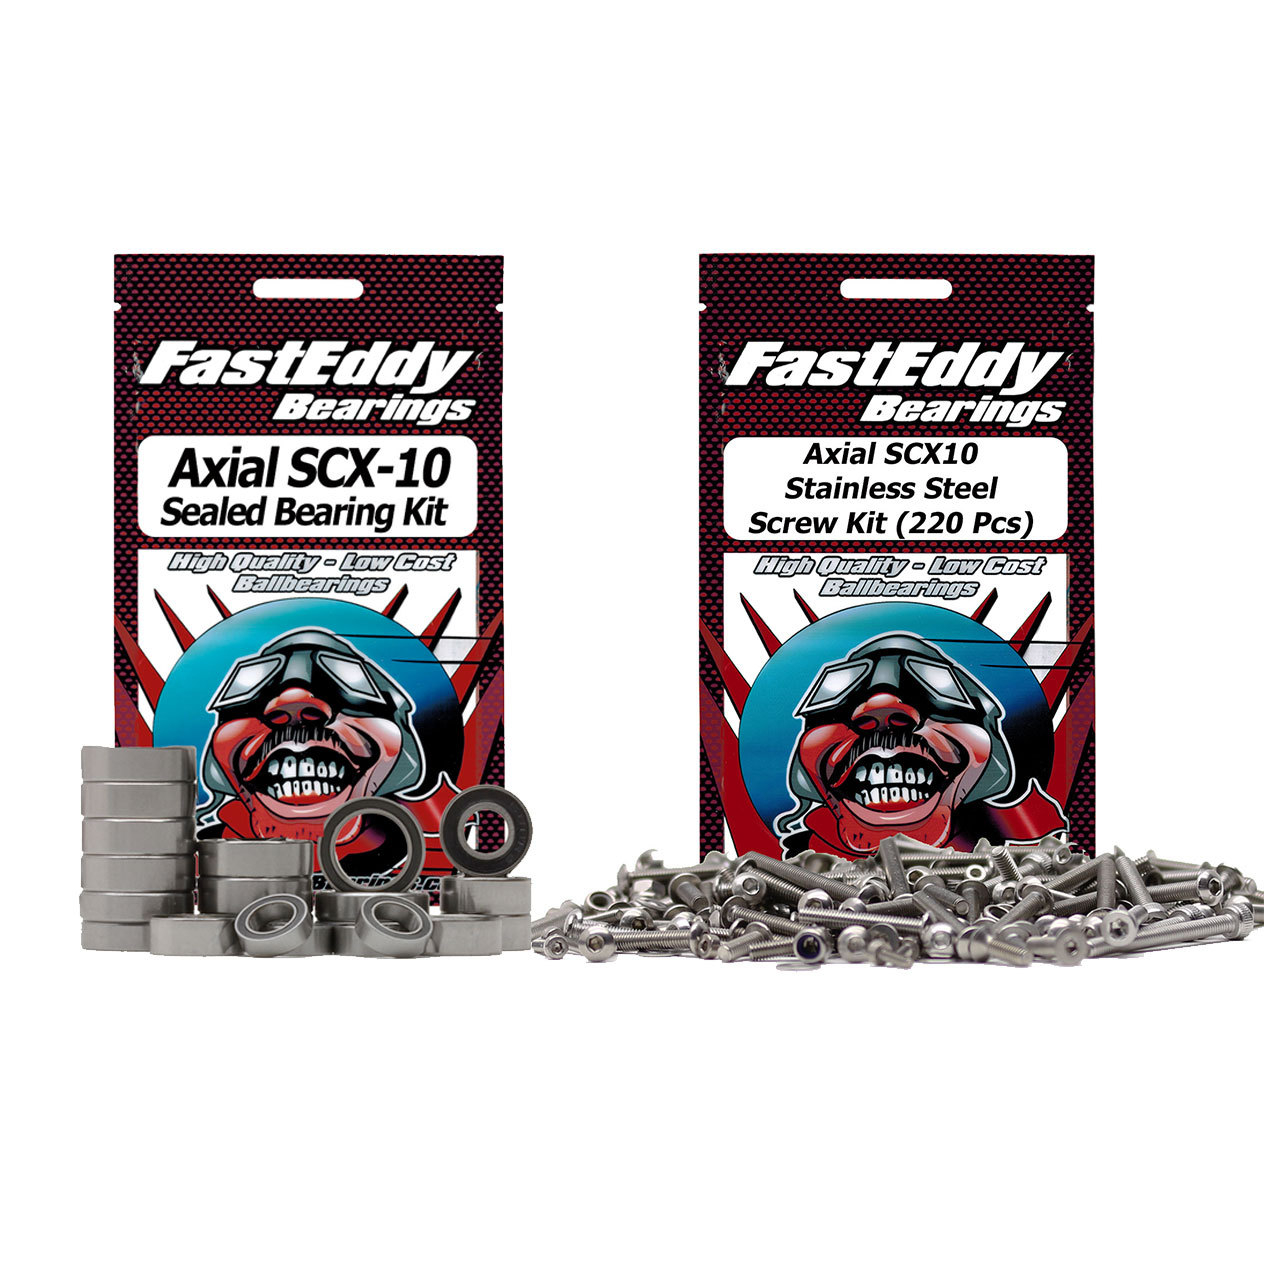 Fast Eddy Axial SCX10 Bearing and Screw Kit Combo